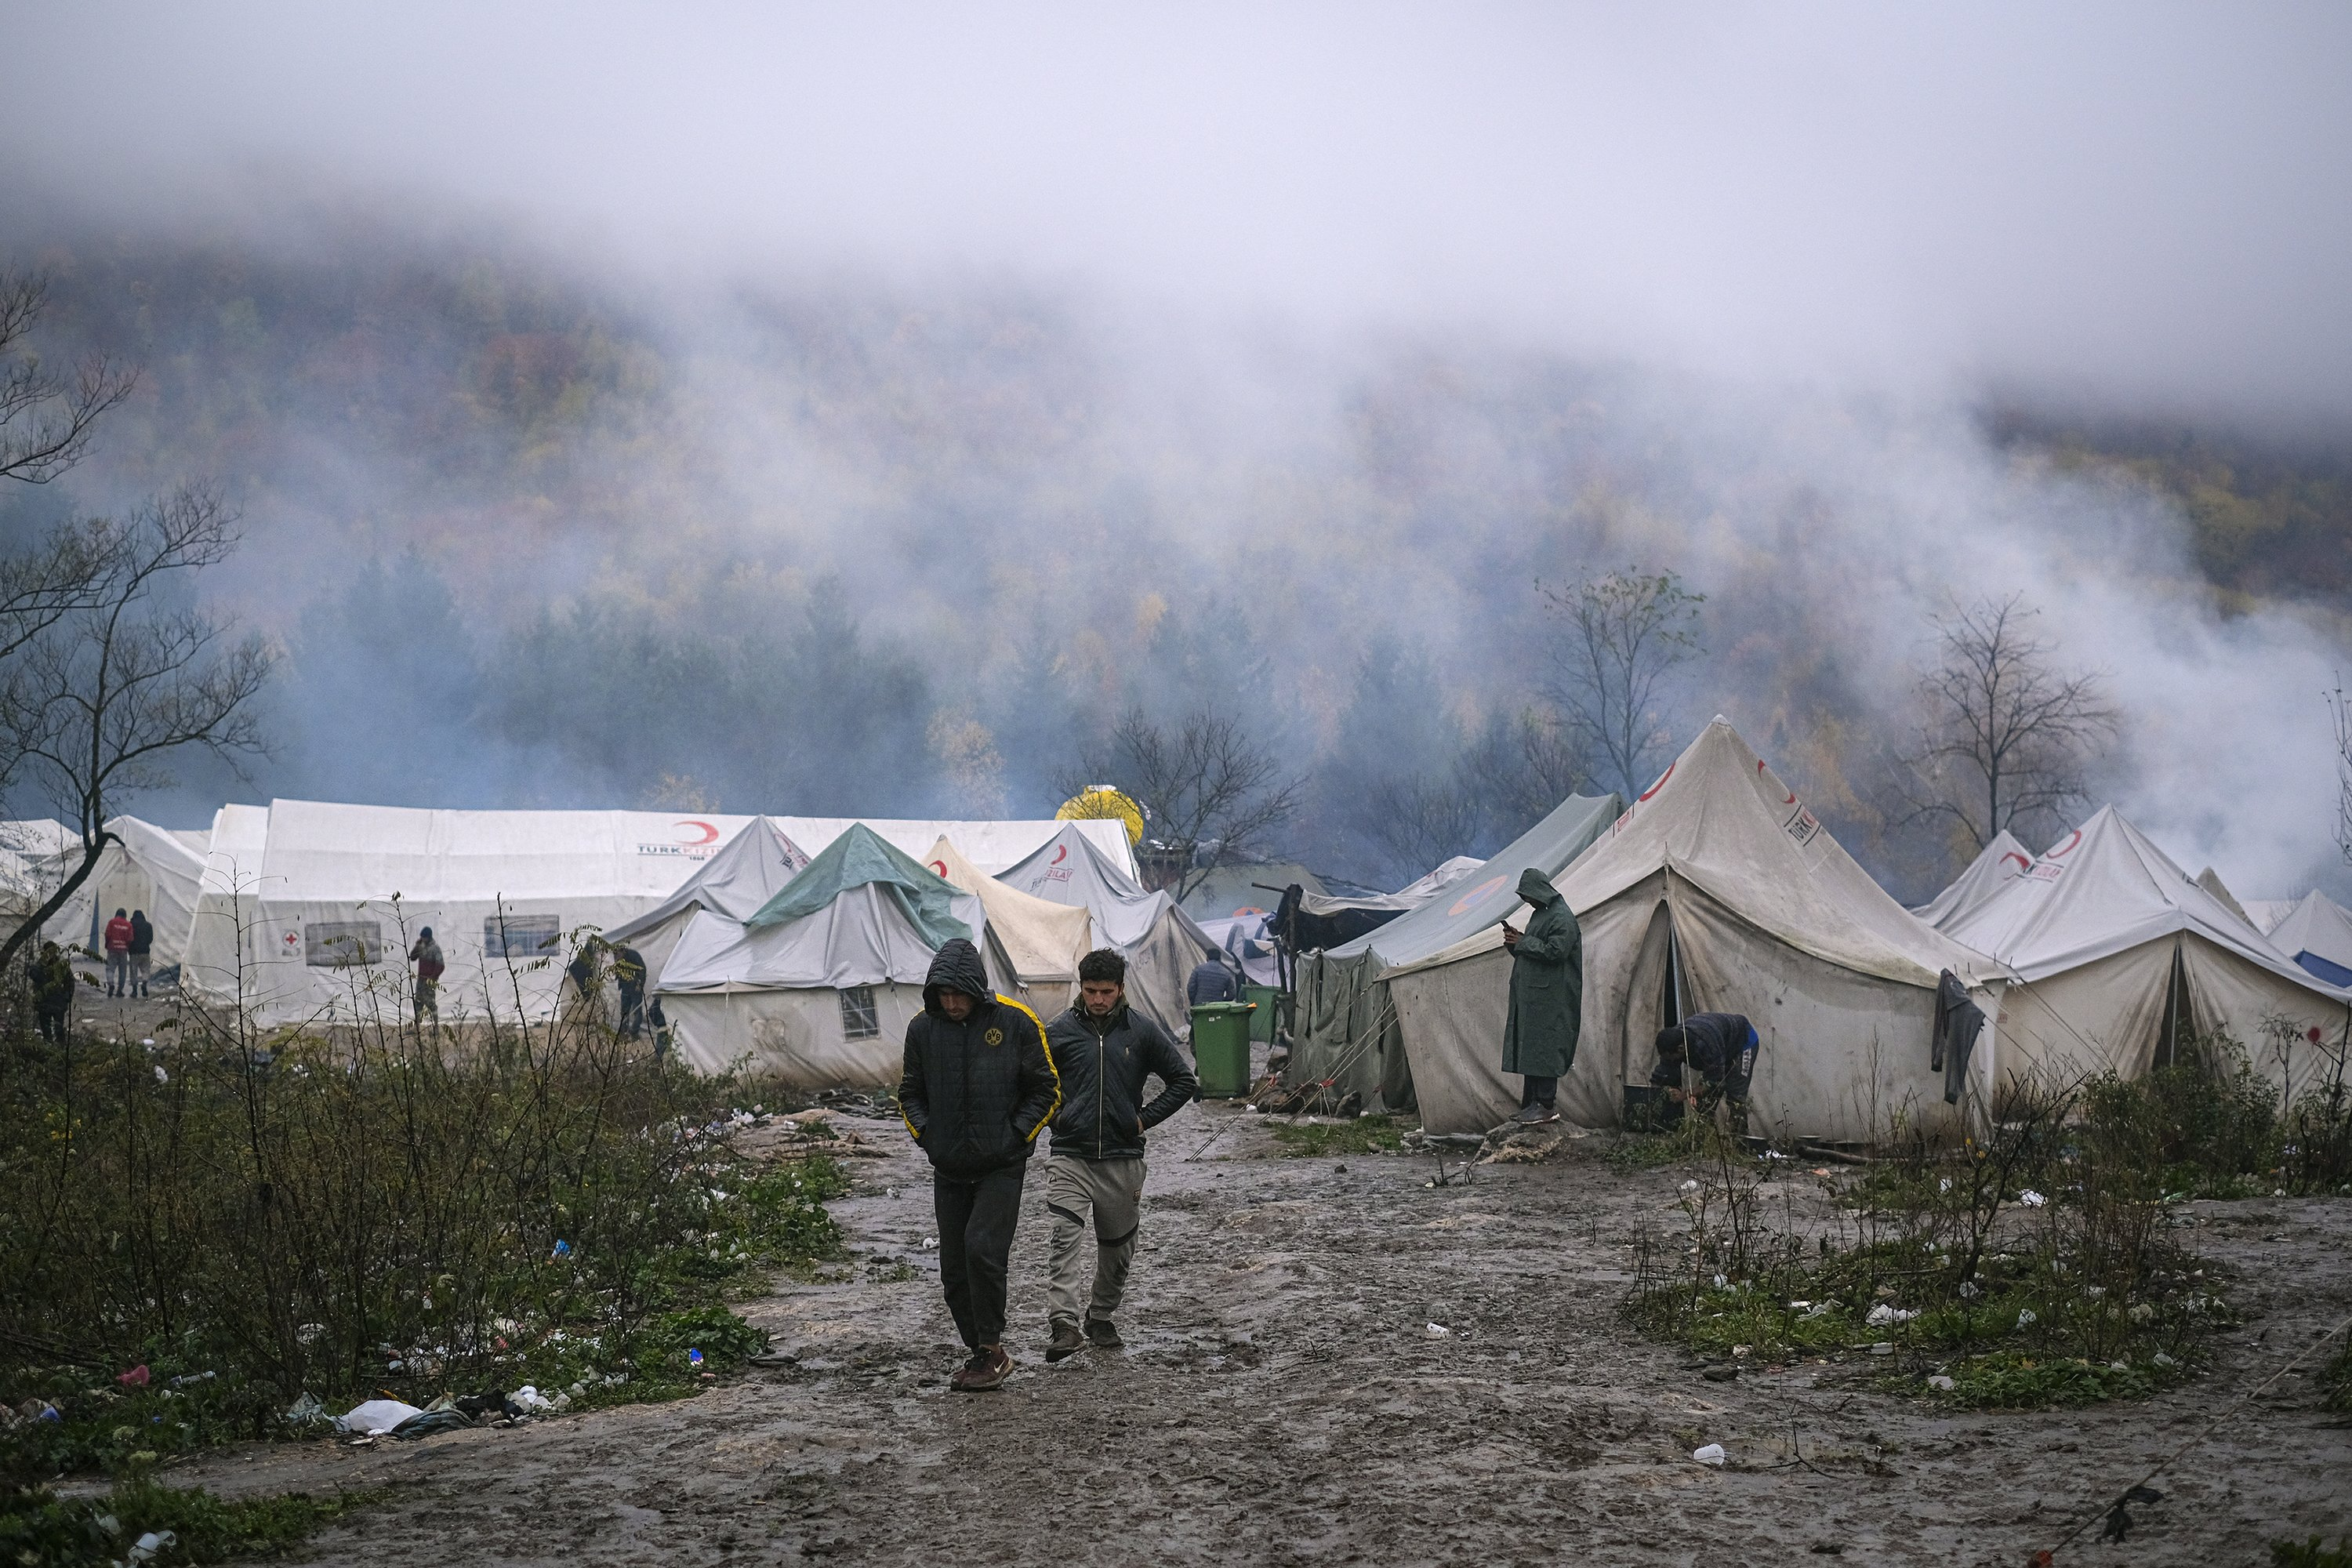 Cold weather comes, no relief in sight for Bosnia's migrants